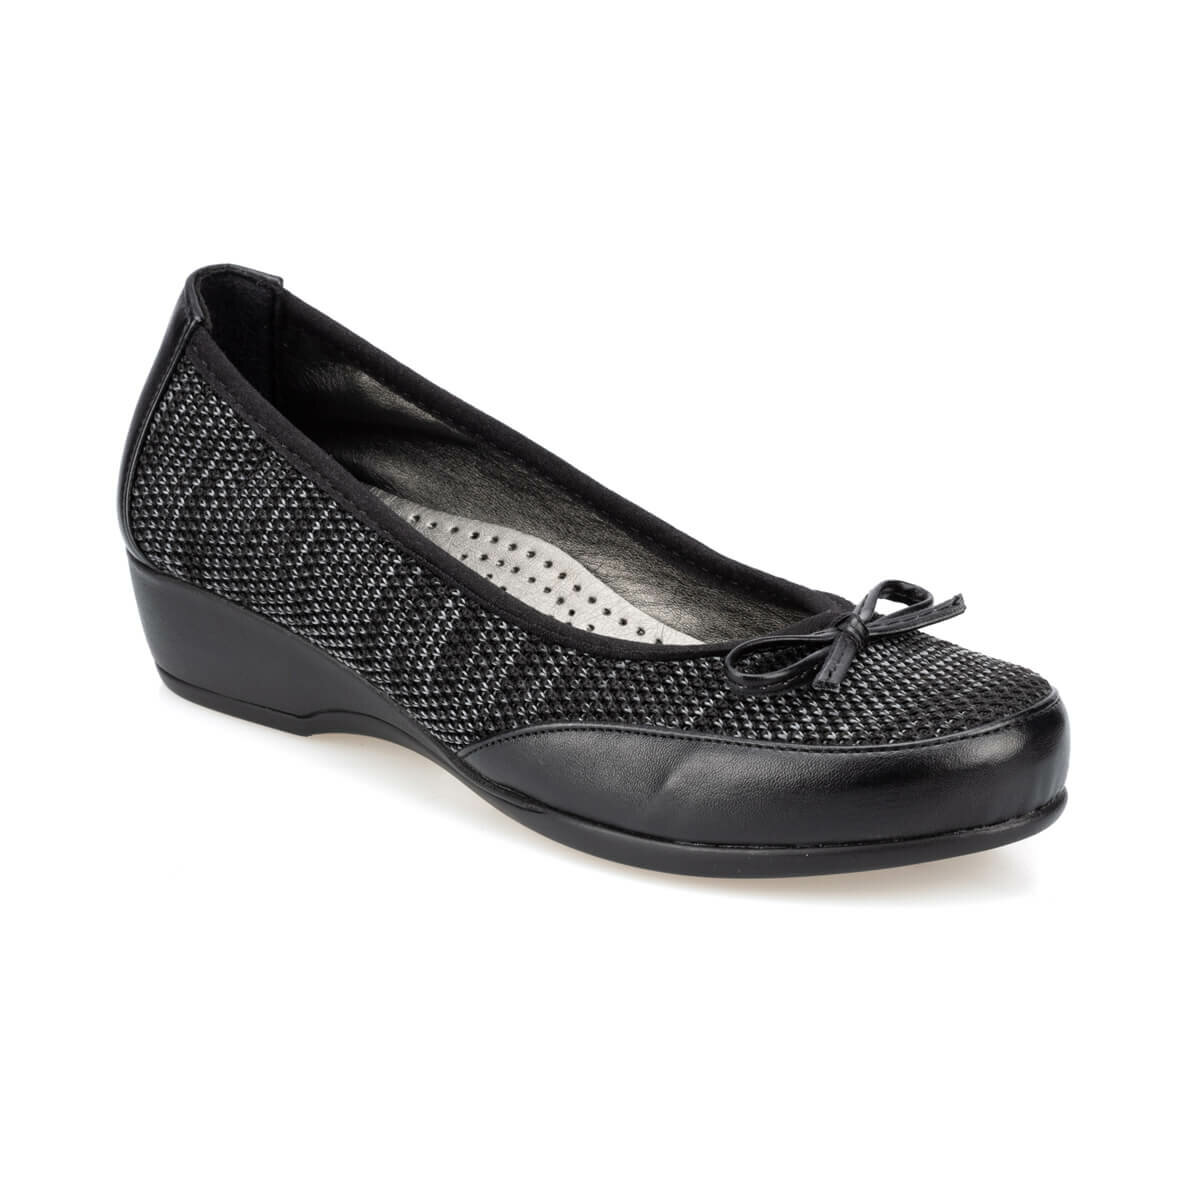 FLO 91. 150667.Z Black Women Shoes Polaris